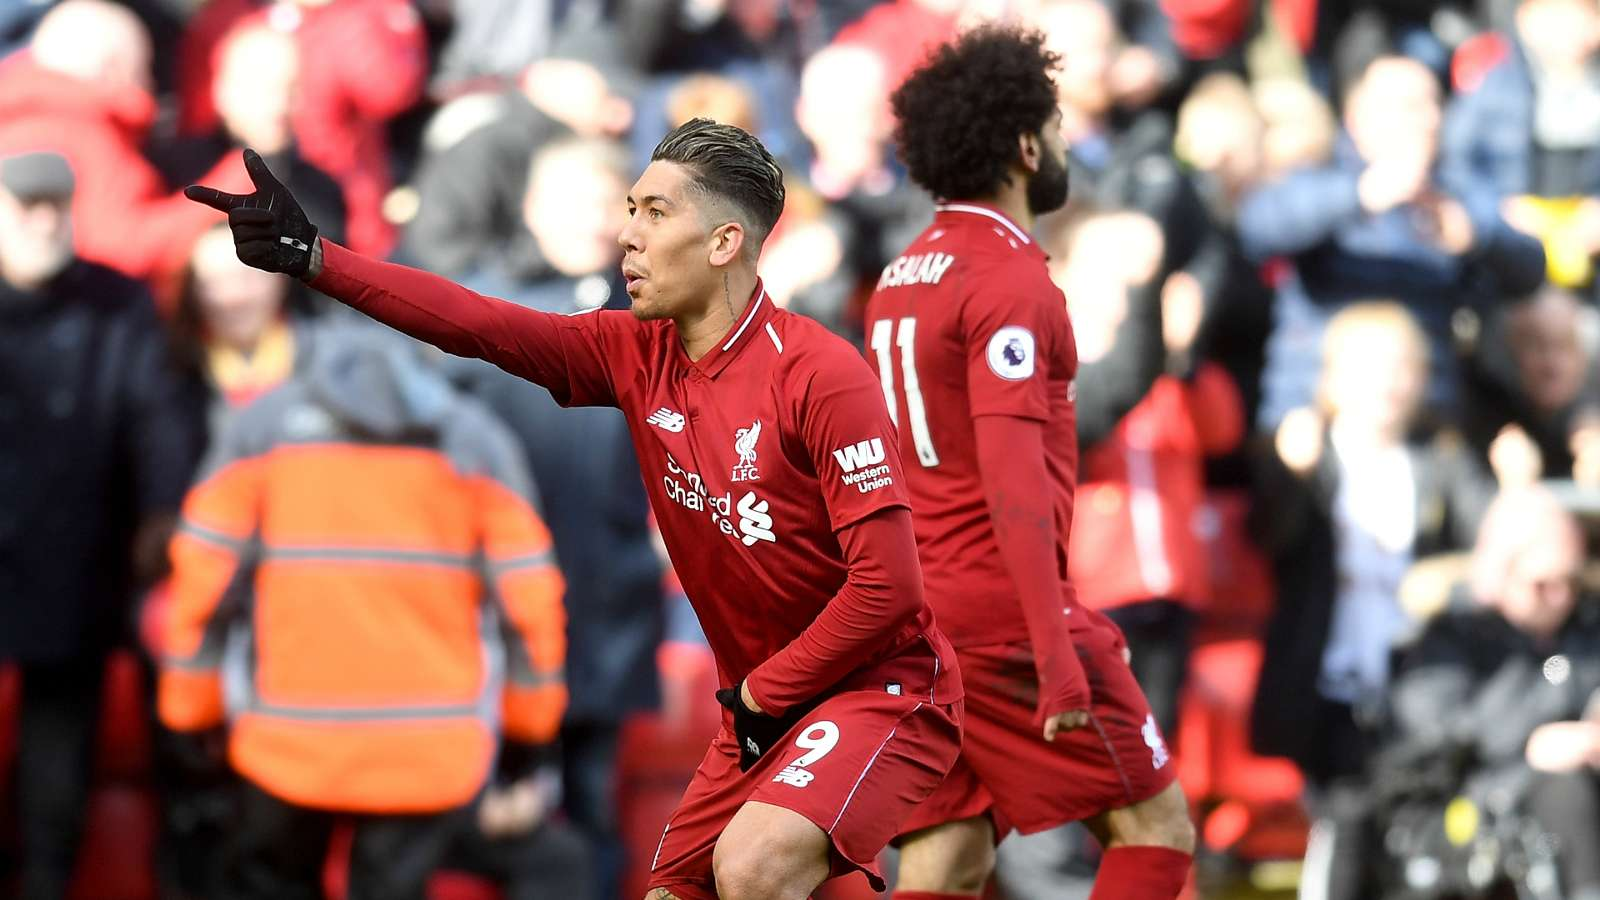 Photo of Liverpool vs Burnley 4-2: Premier League Match Report & Highlights